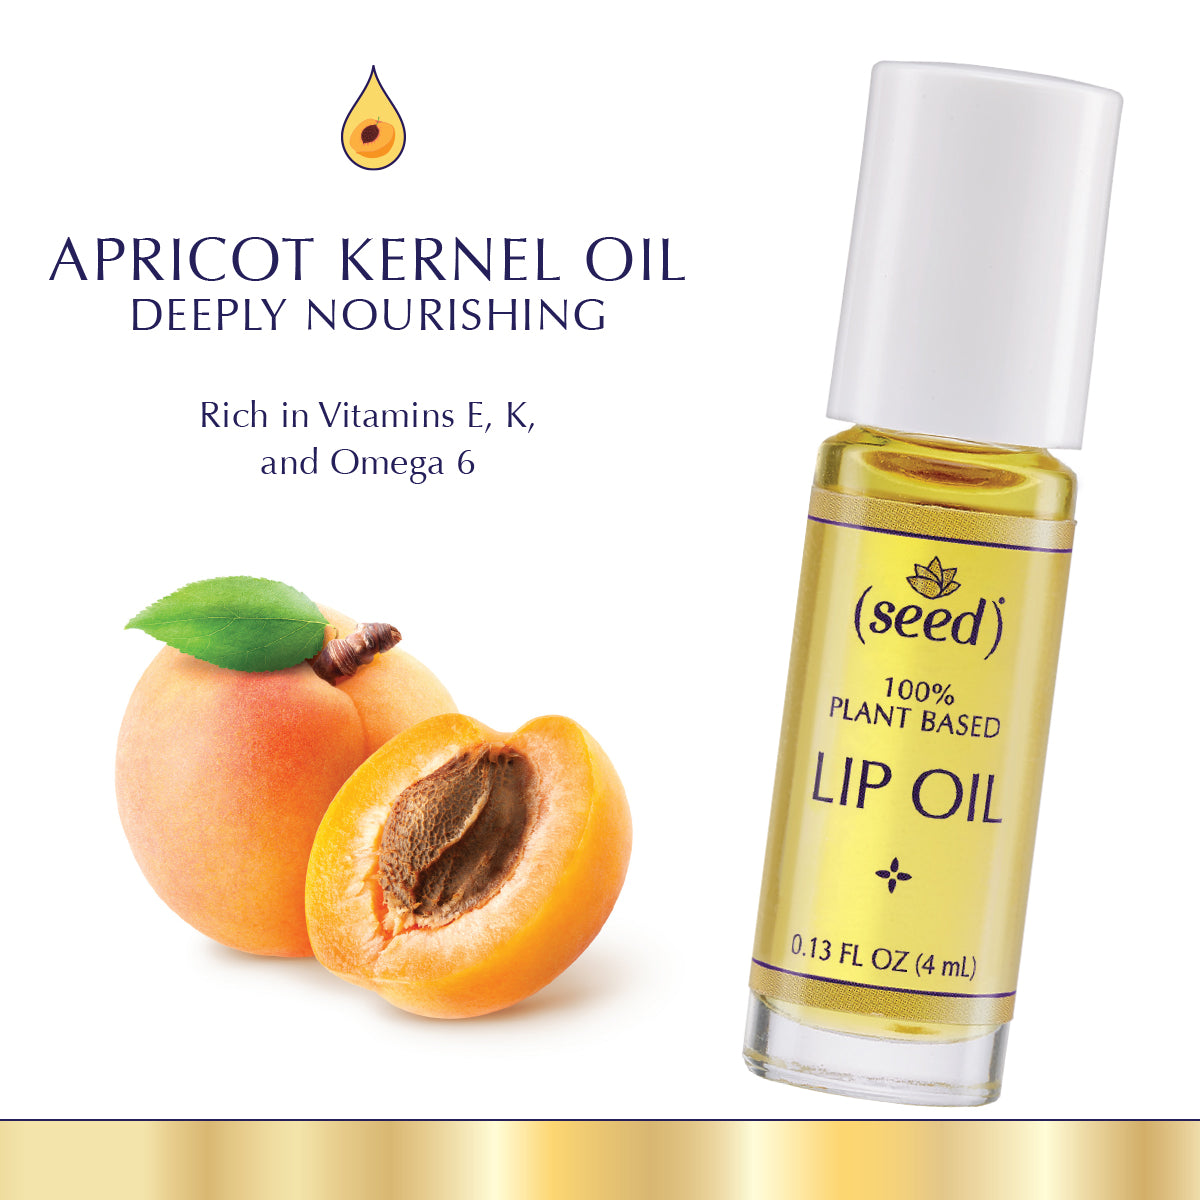 Seed Lip Oil features deeply nourishing apricot kernel oil